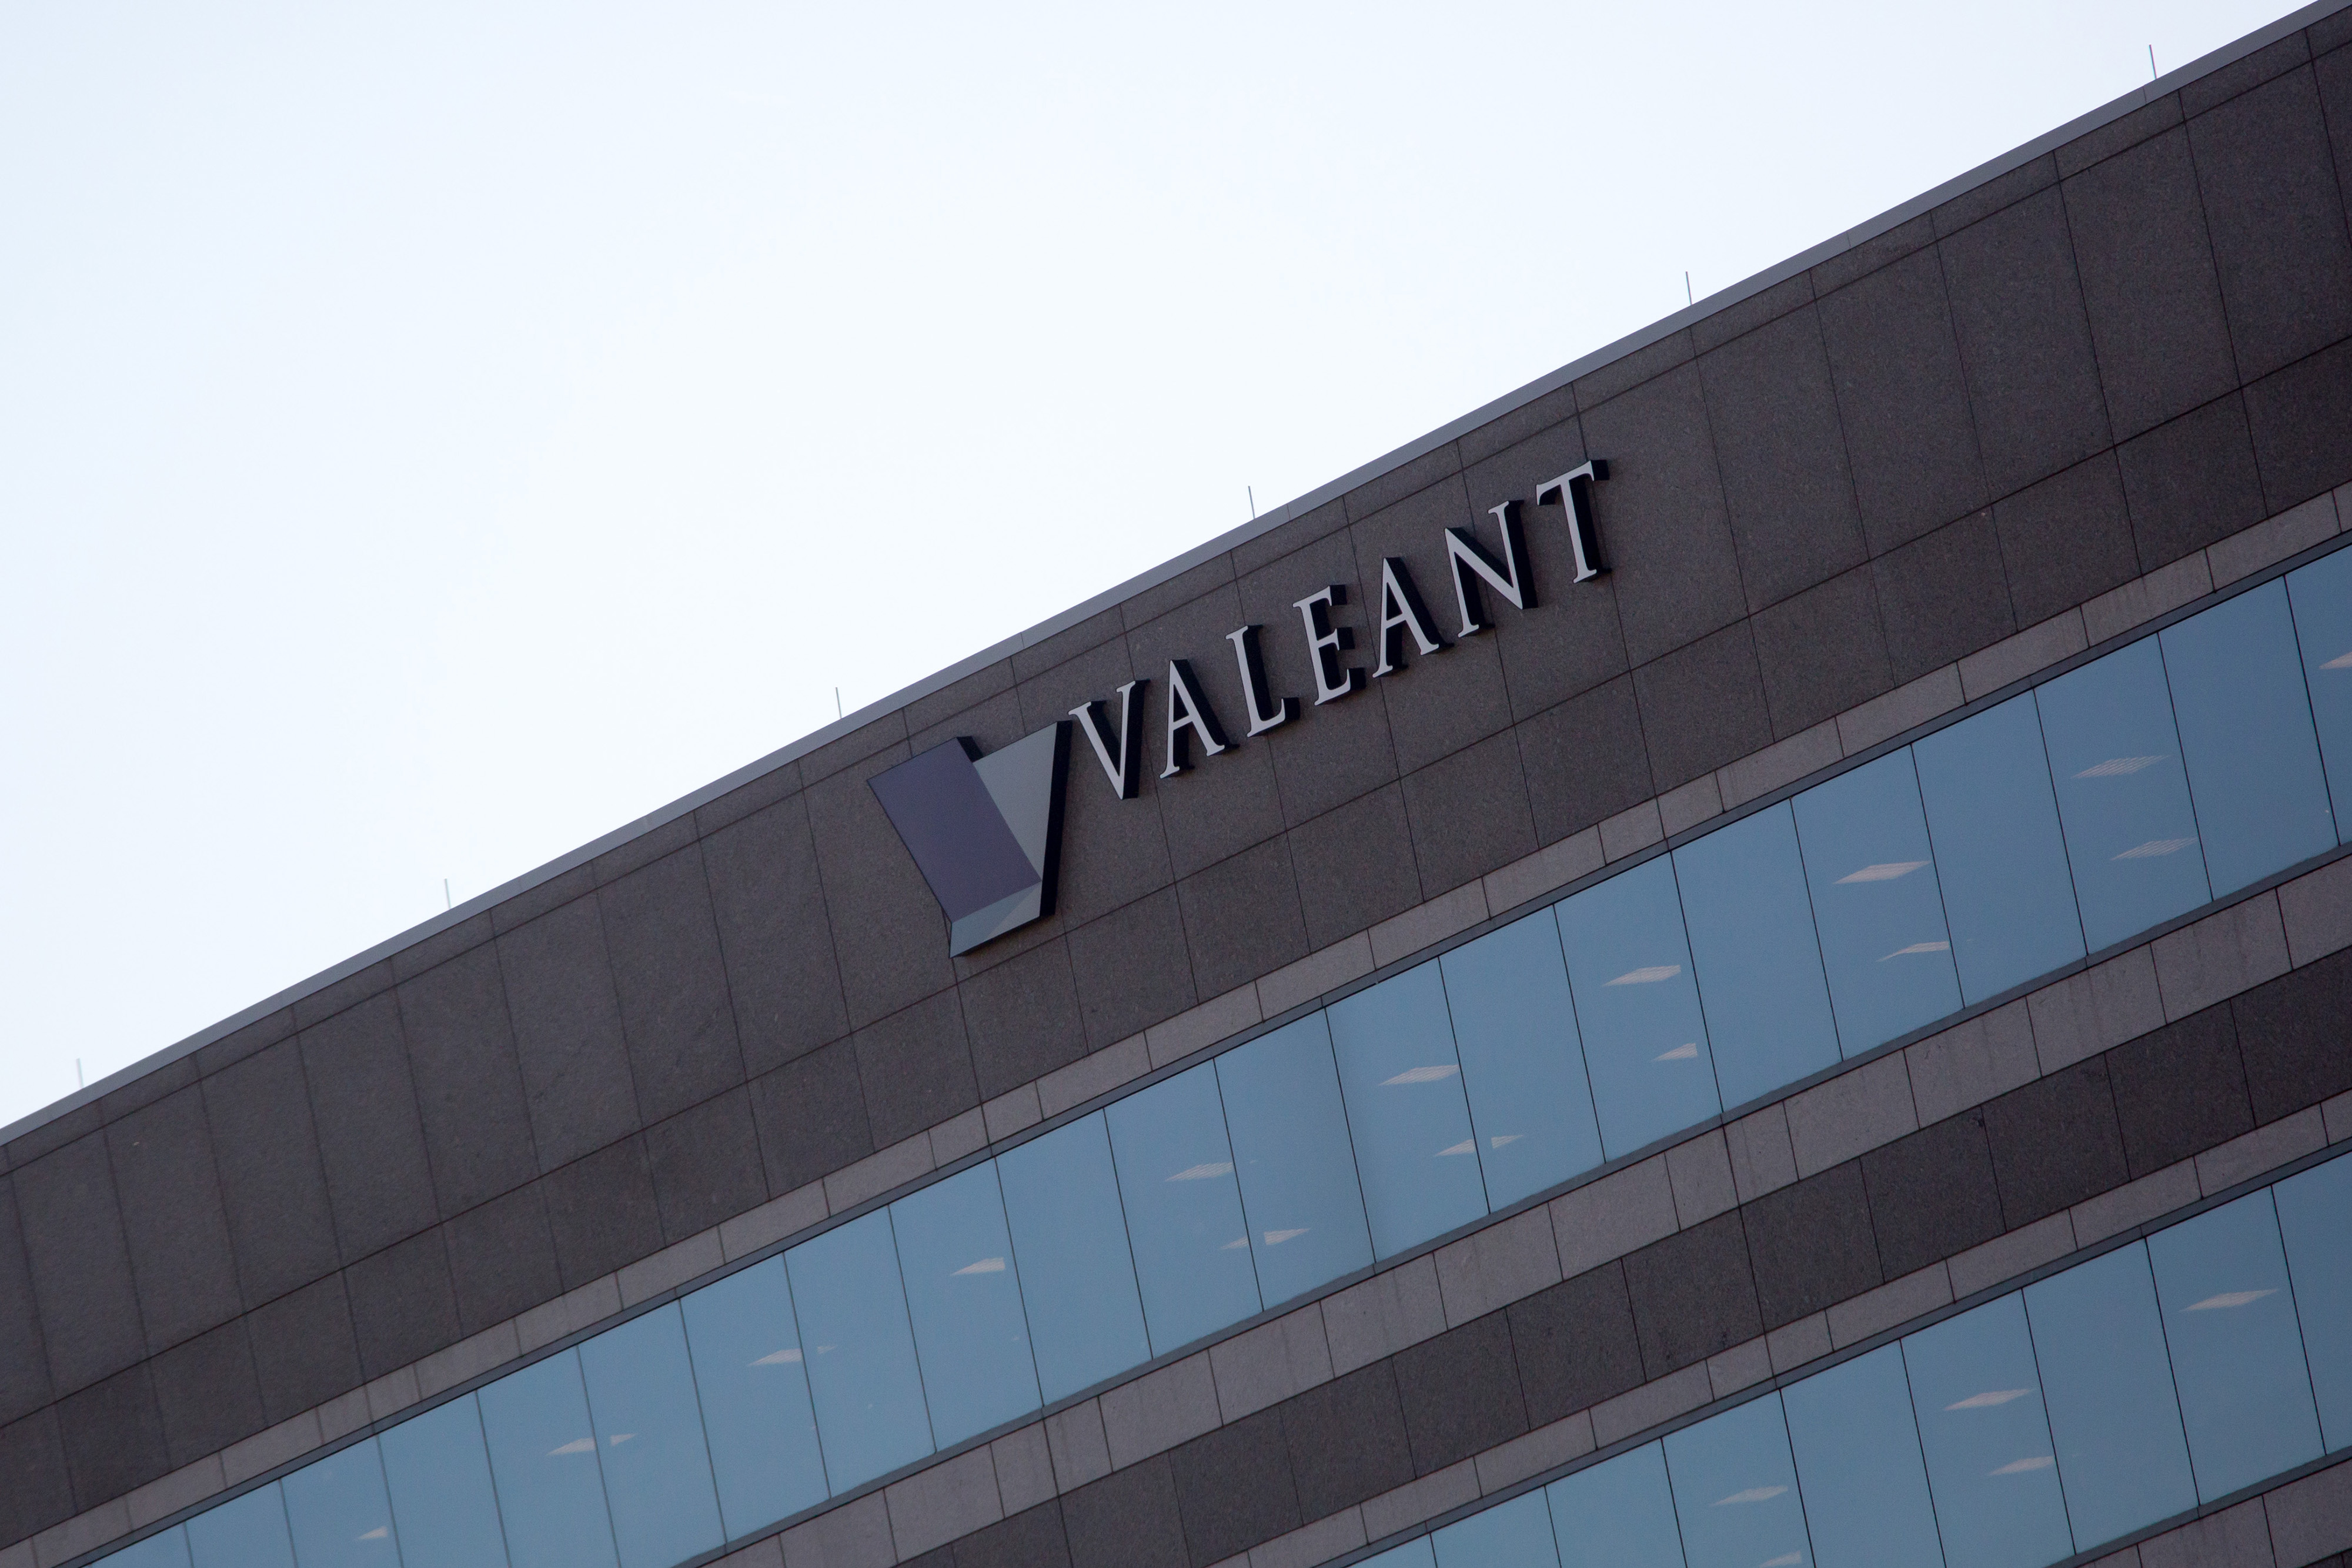 The headquarters of Valeant Pharmaceuticals International, Inc. stands in  Bridgewater Township, U.S., on Wednesday Nov. 04, 2015. Photographer: Michael Nagle/Bloomberg